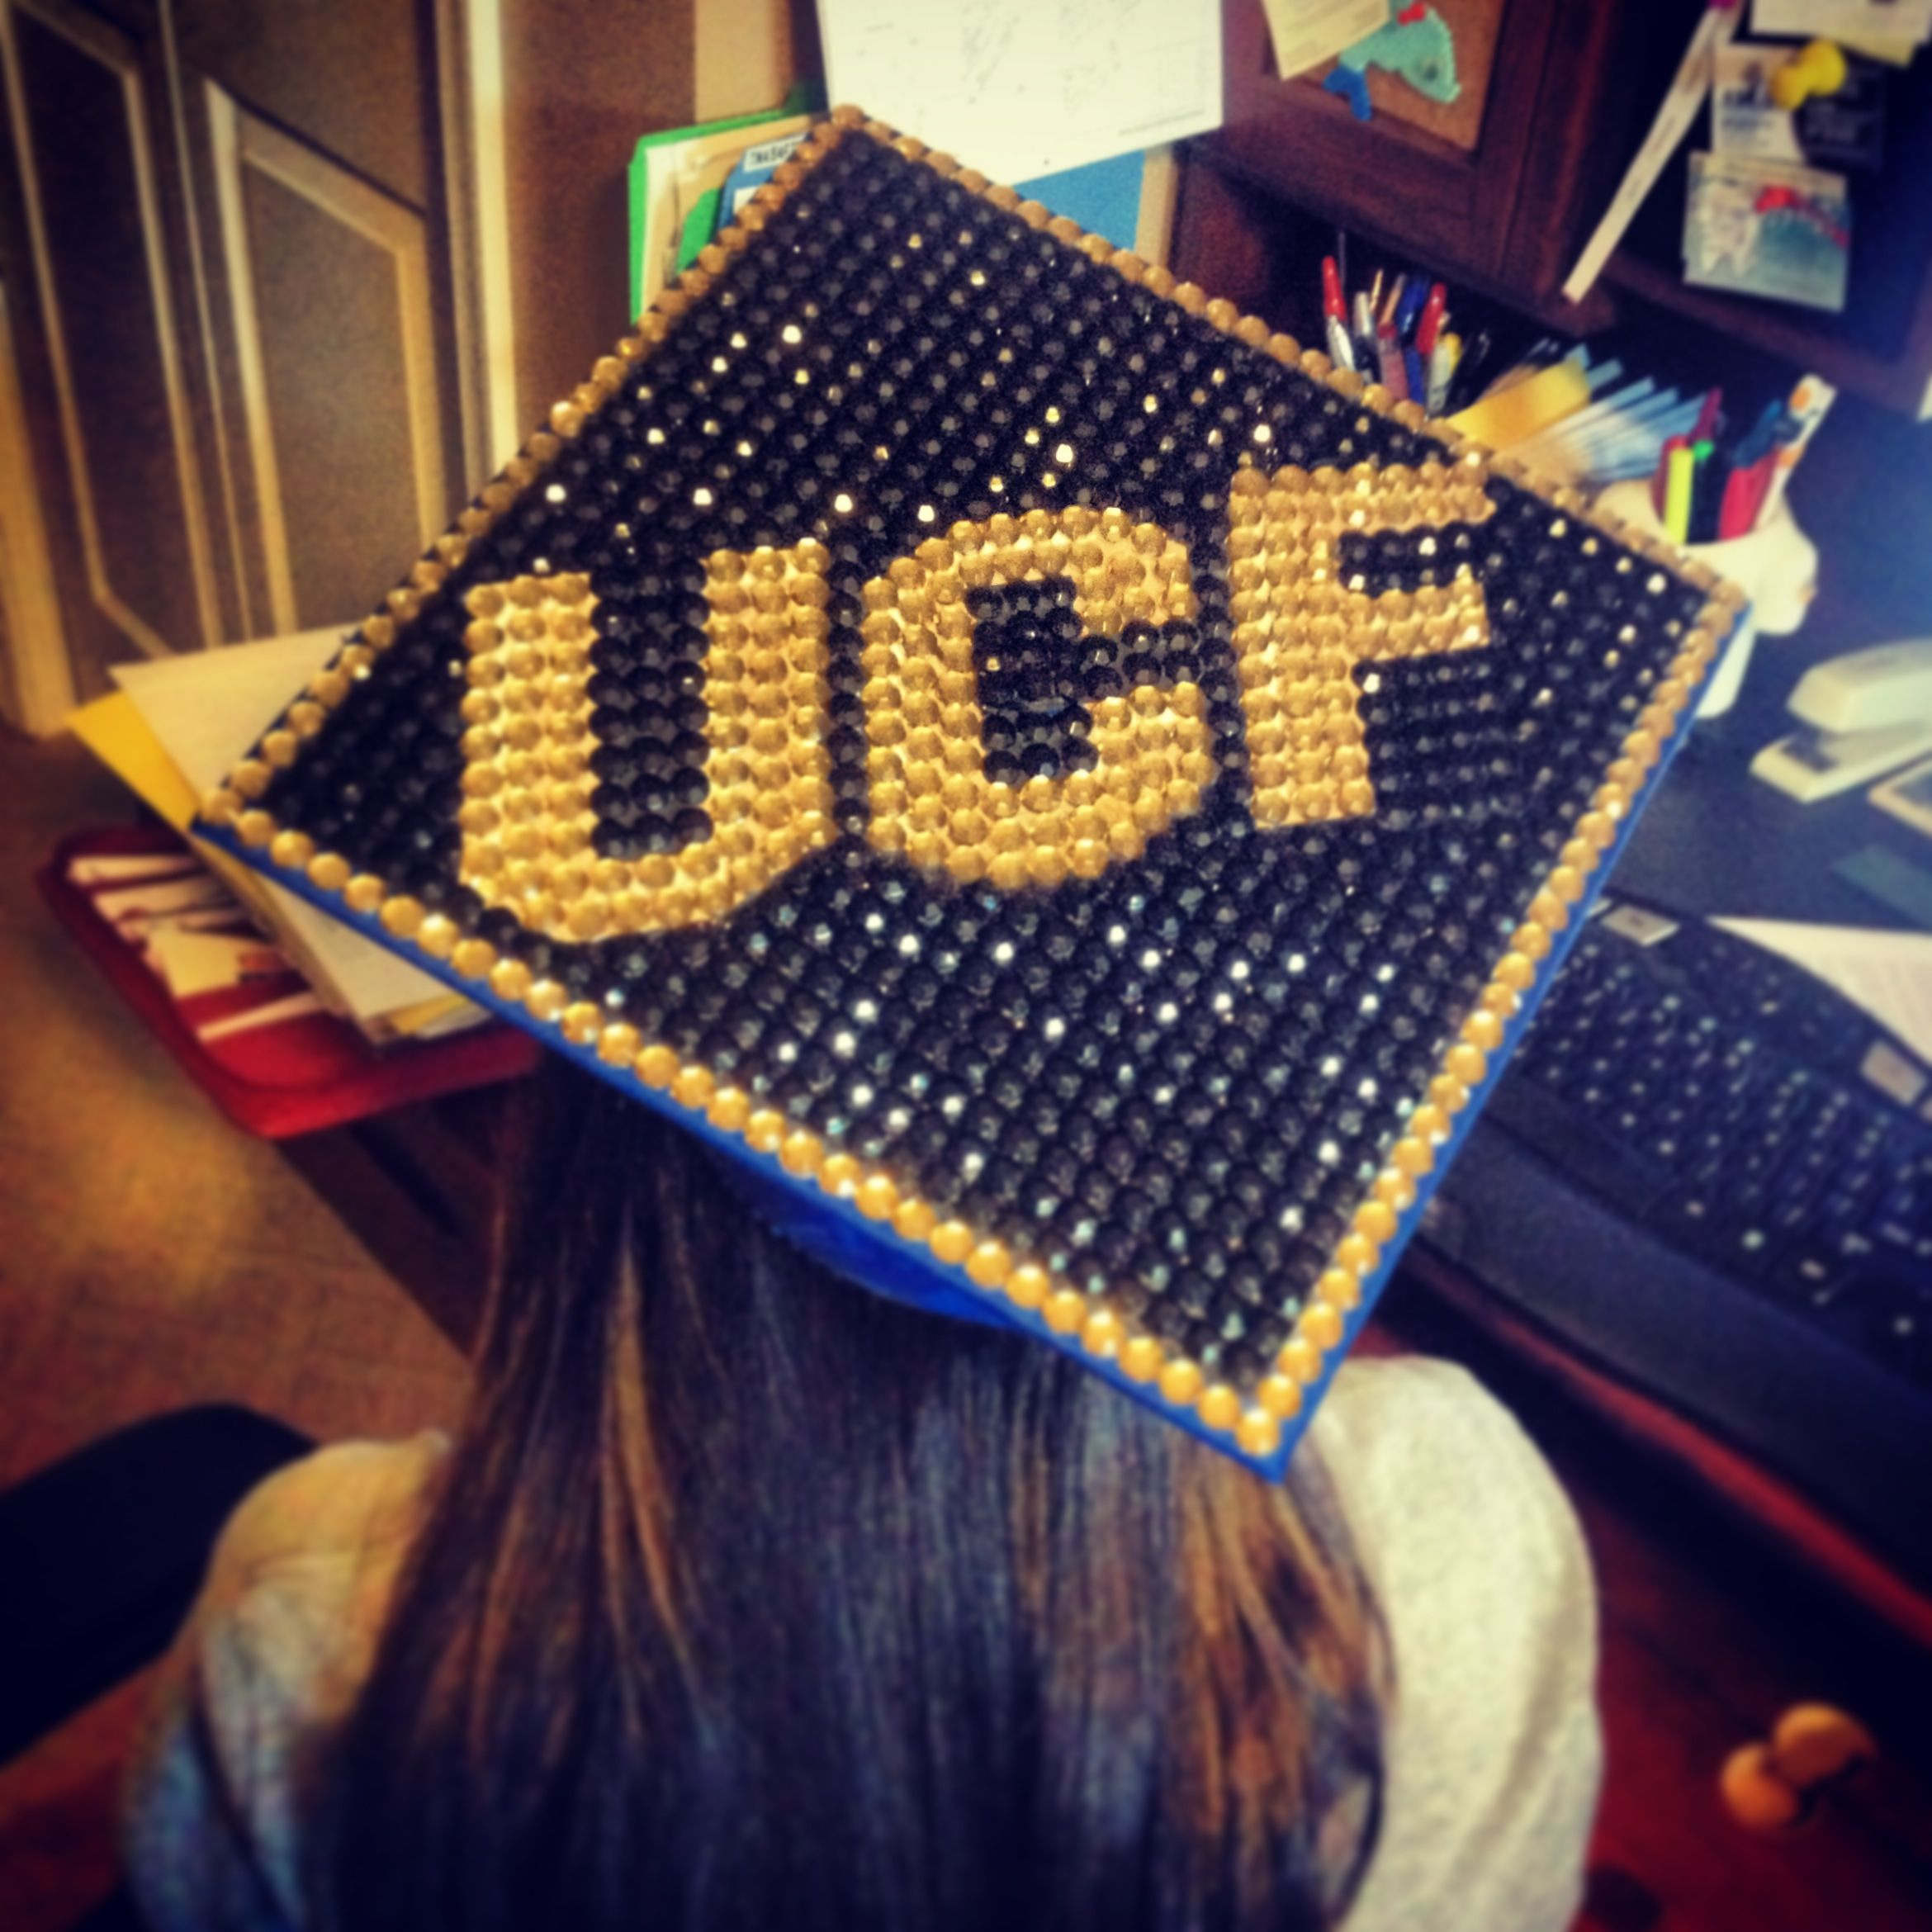 Fascinating Teachers How To Decorate A Graduation Cap Bling Ucf Decorated Graduation Cap Ucf Decorated Graduation Cap Ucf Grad Pinterest Decorated How To Decorate A Graduation Cap ideas How To Decorate A Graduation Cap